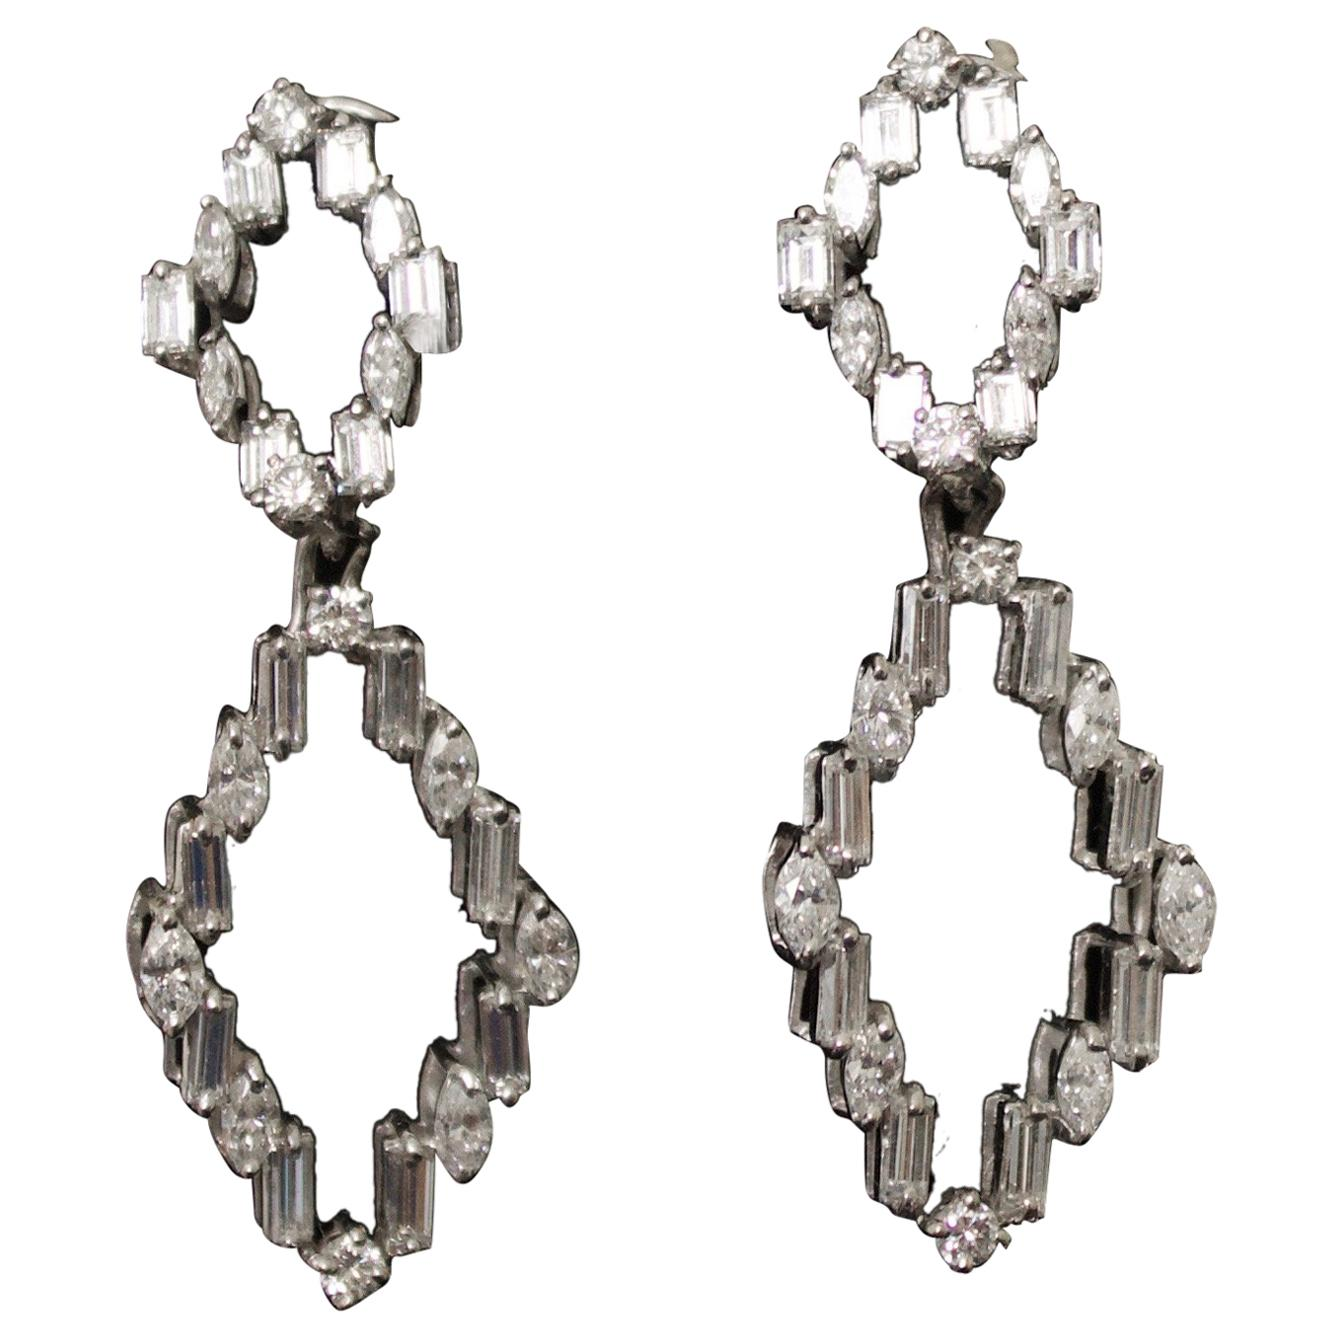 Diamond Dangling Convertible Earrings in 18 Karat 6.10 Carat